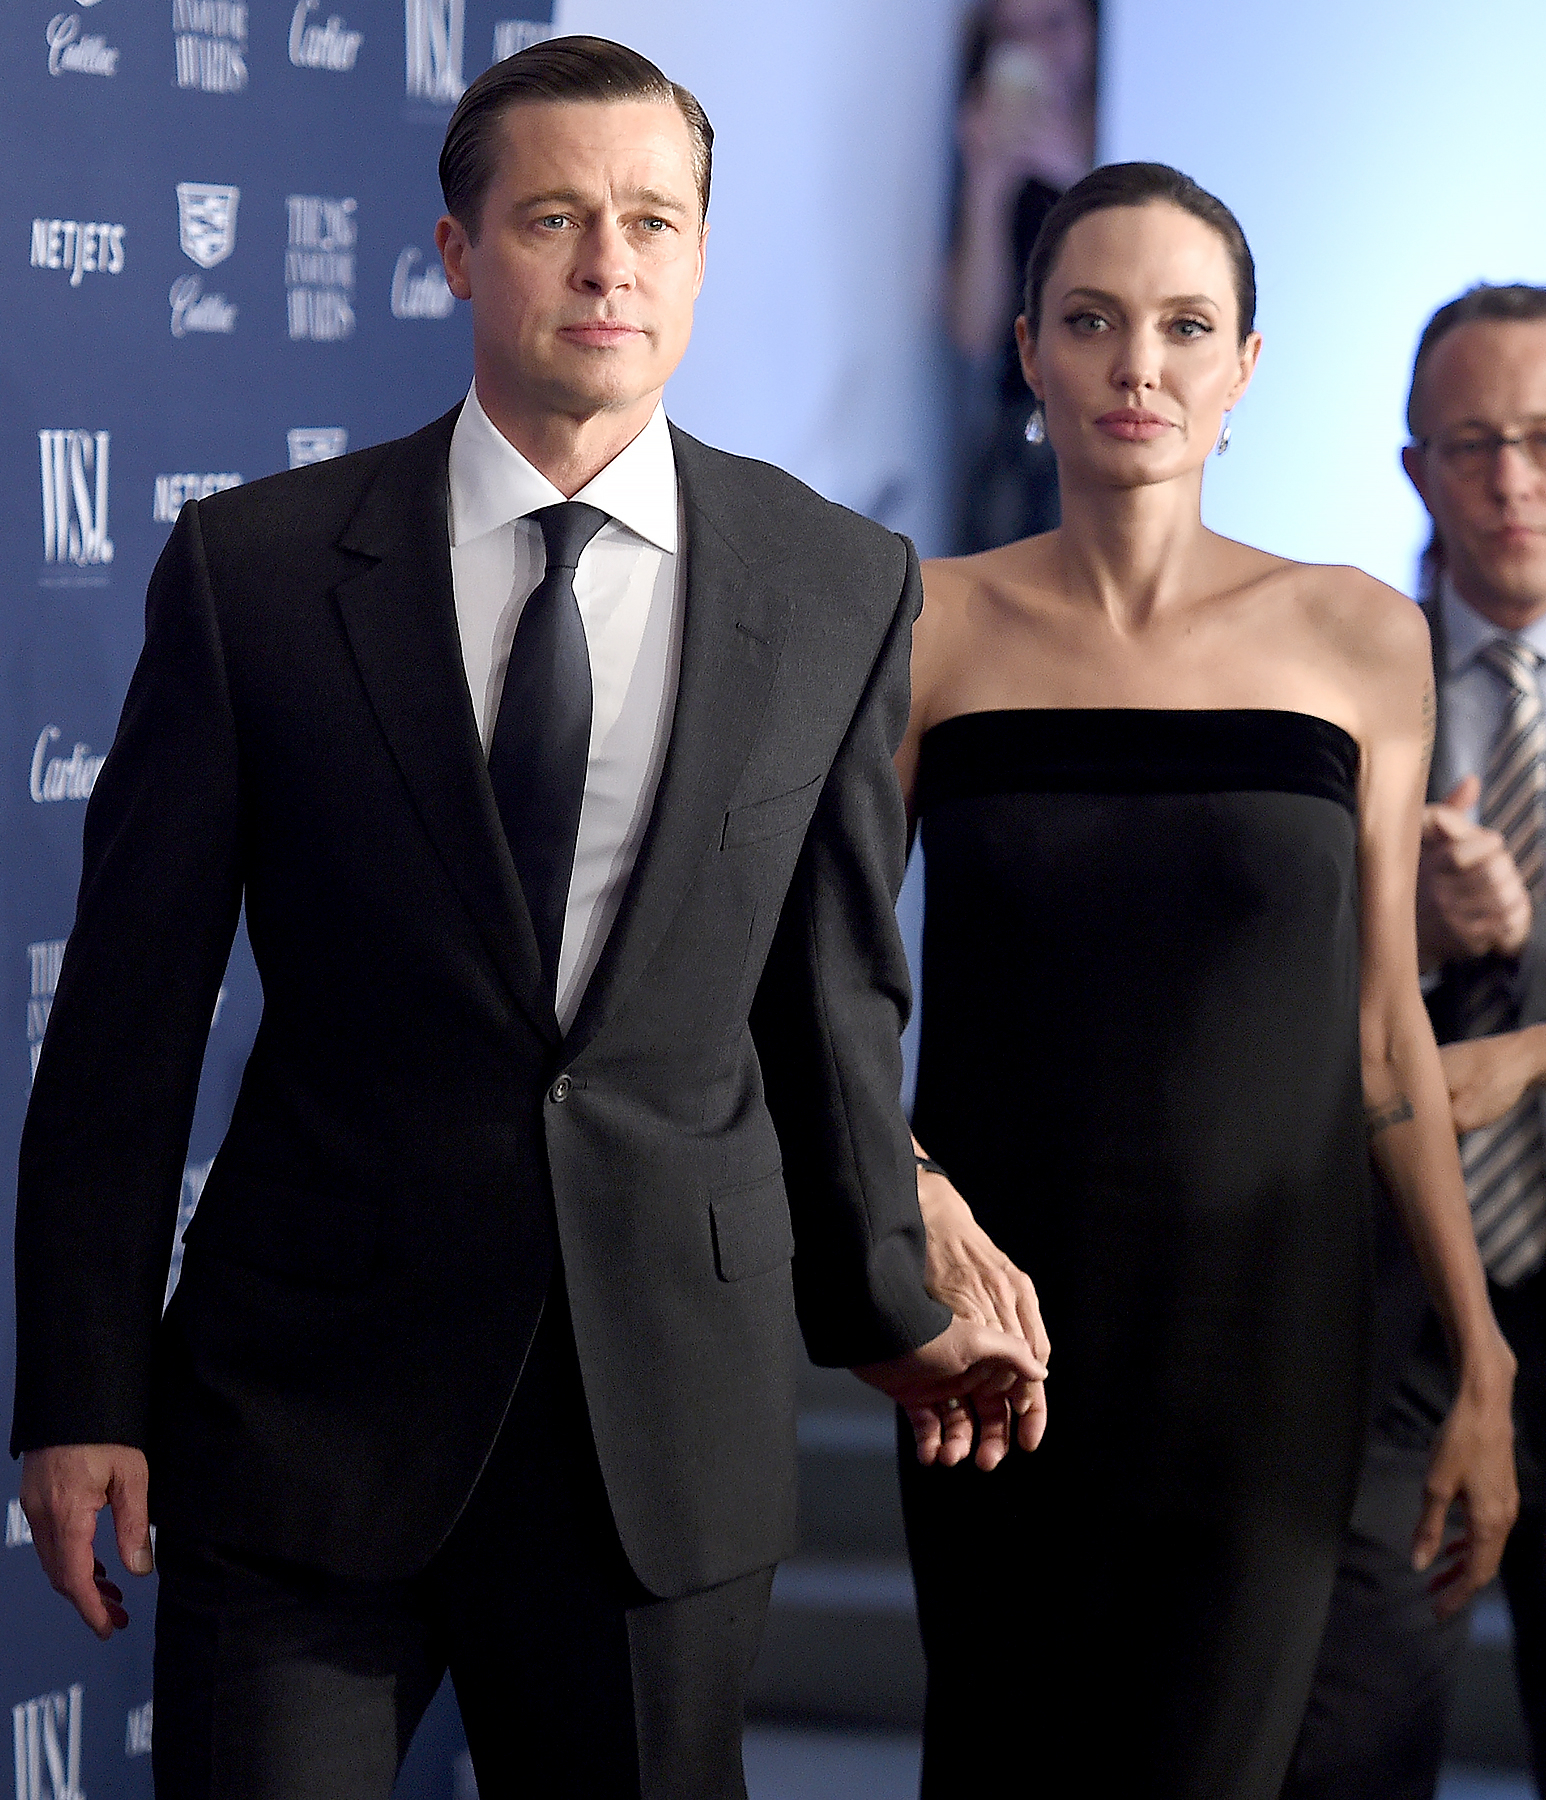 Brad Pitt and Angelina Jolie Pitt attend the WSJ. Magazine 2015 Innovator Awards.